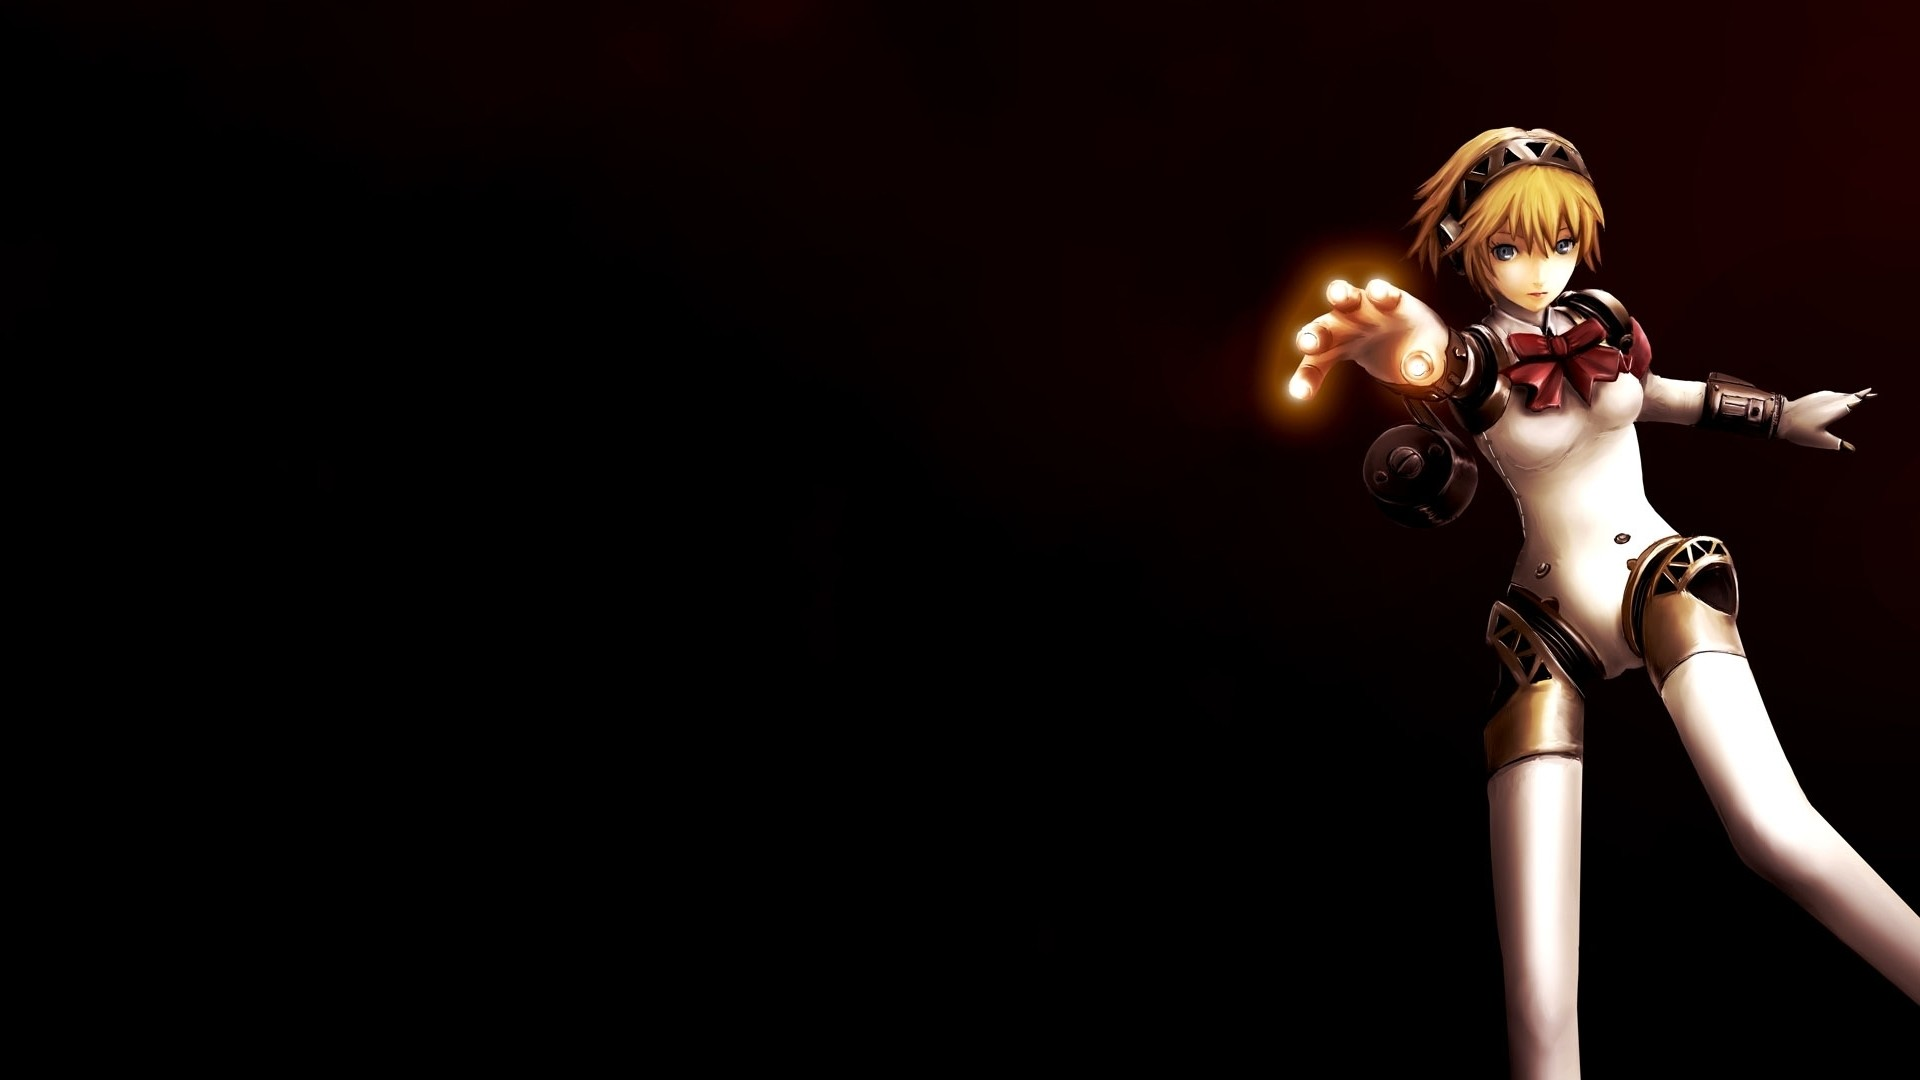 Persona series Persona 3 simple background Aigis wallpaper | |  213426 | WallpaperUP